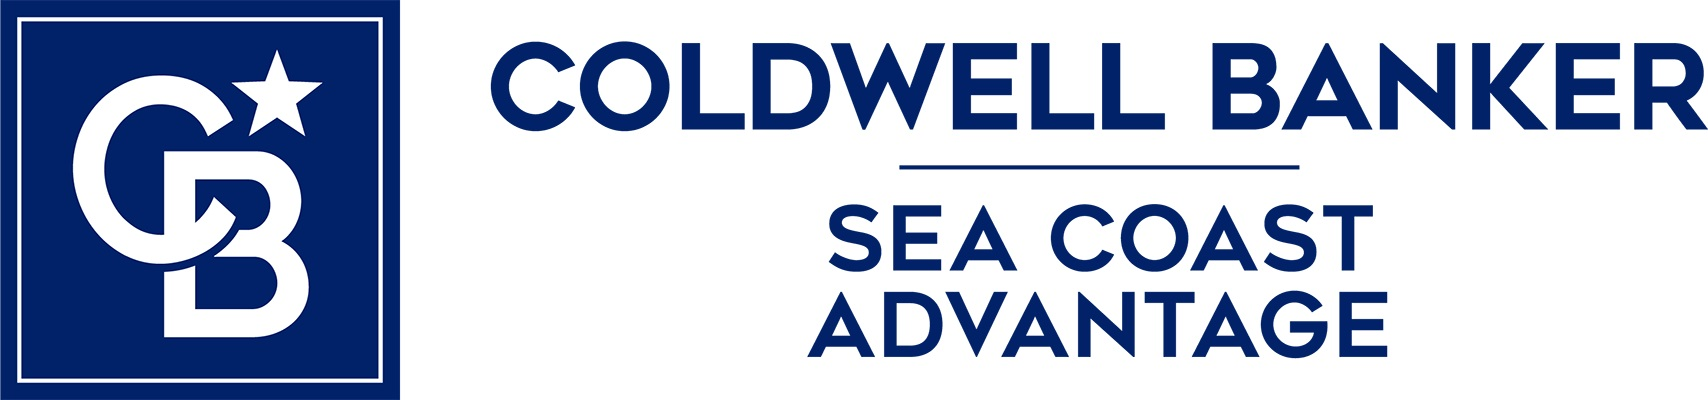 Chris Stewart - Coldwell Banker Sea Coast Advantage Realty Logo